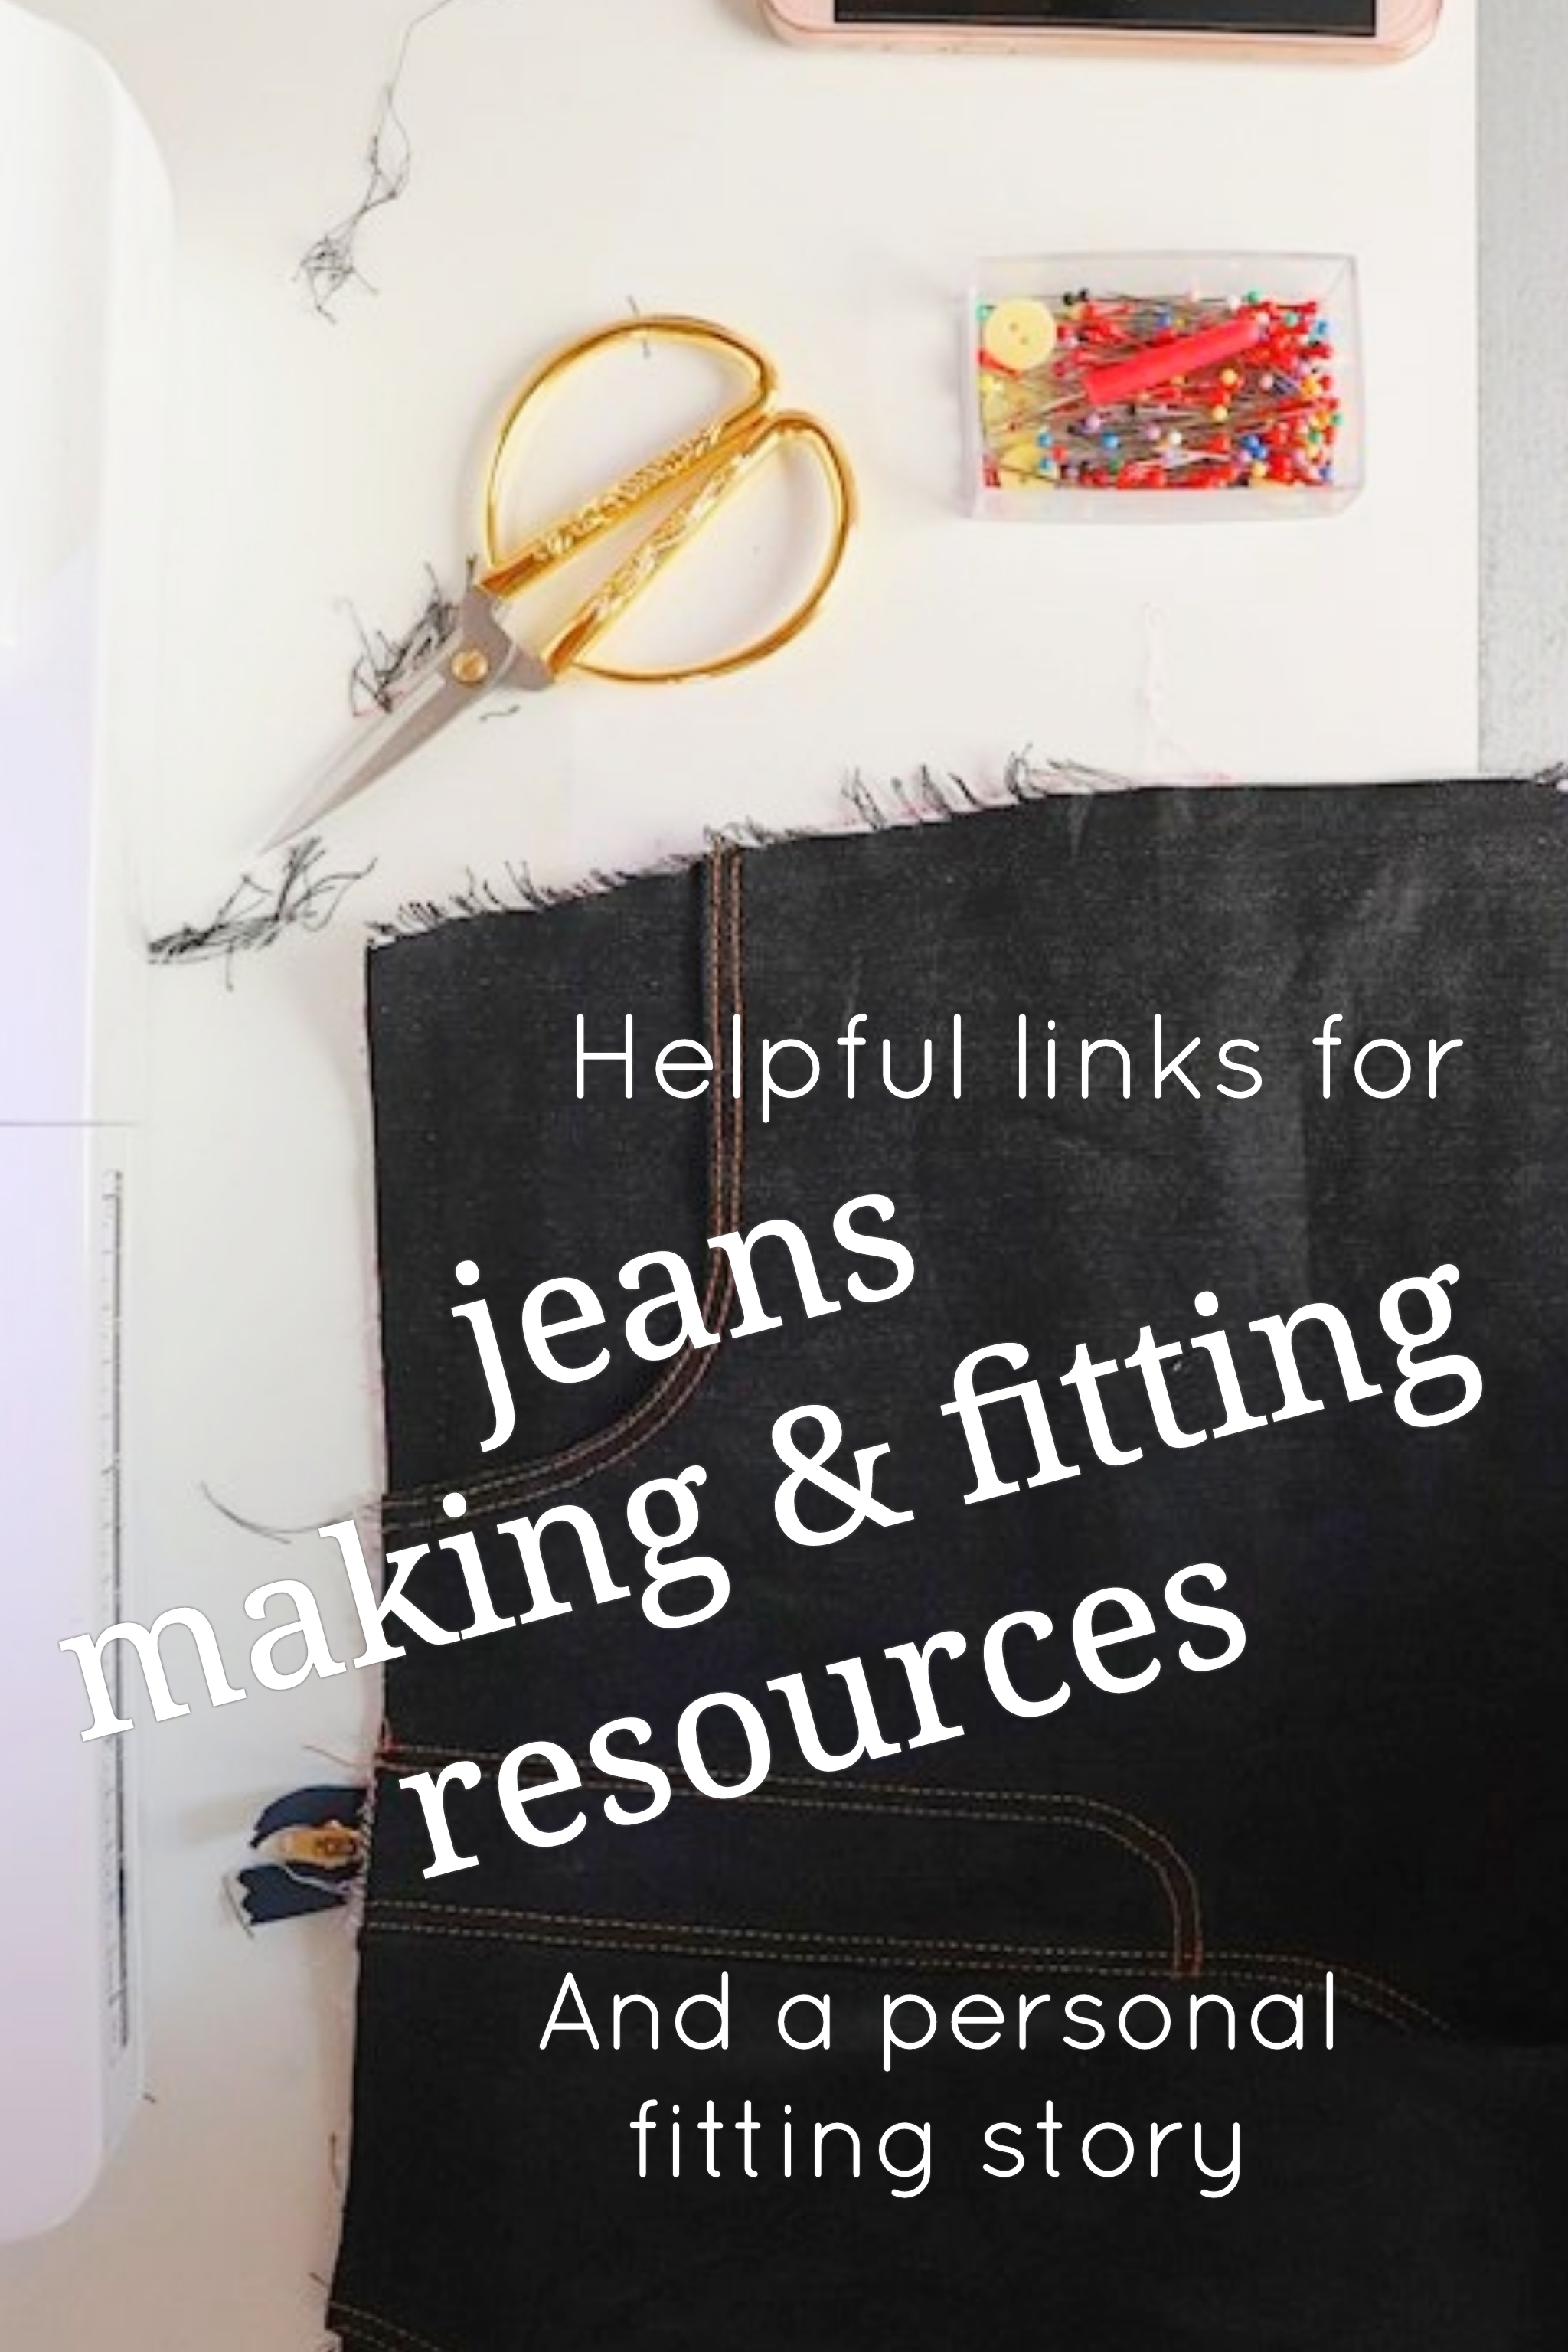 Helpful links for jeans making and fitting, and a personal jeans fitting story by Sewingridd